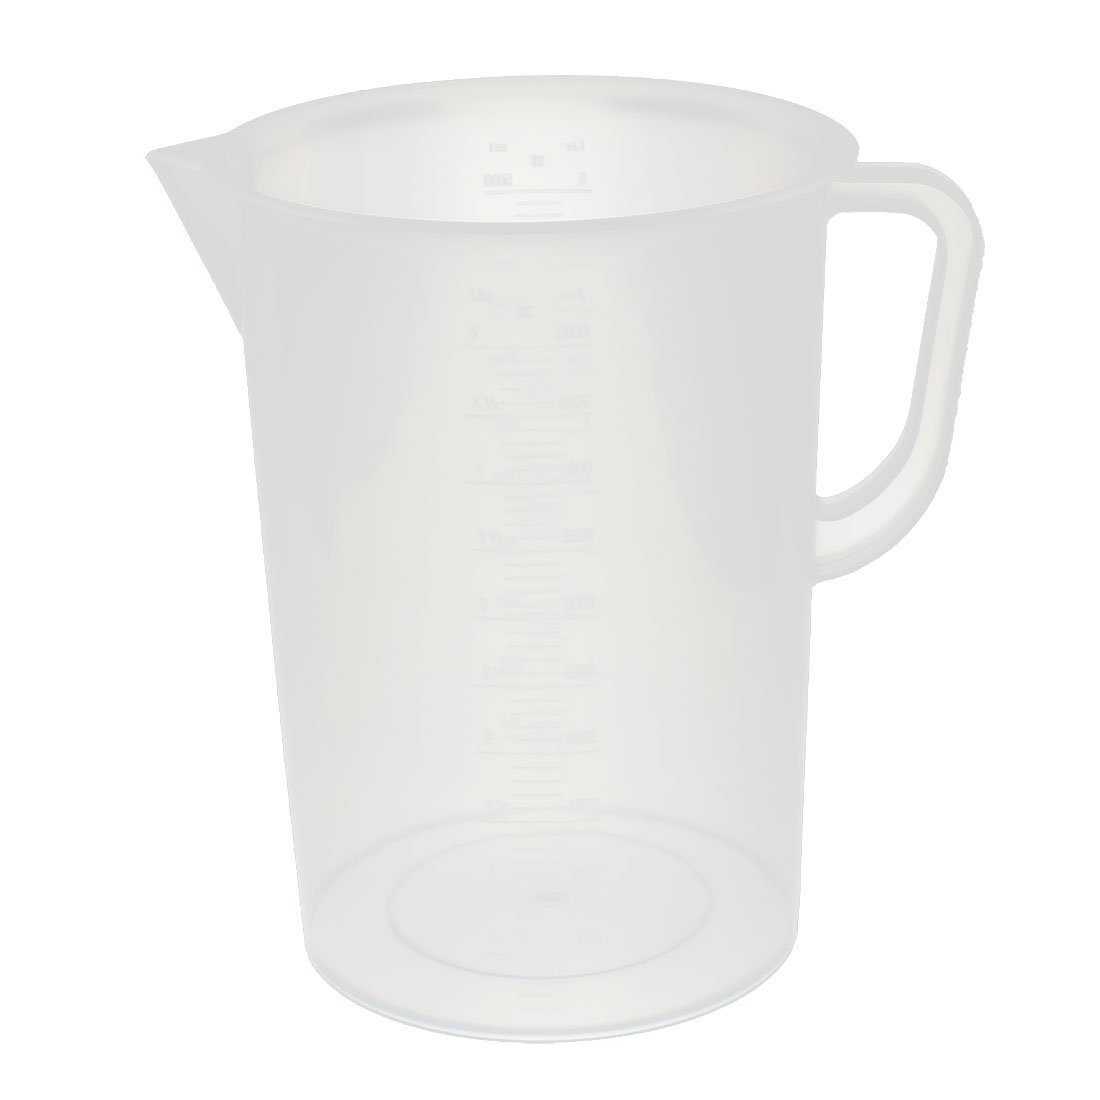 uxcell Kitchen Labotary 5000mL Plastic Measuring Cup Jug Pour Spout Container a16082200ux0228